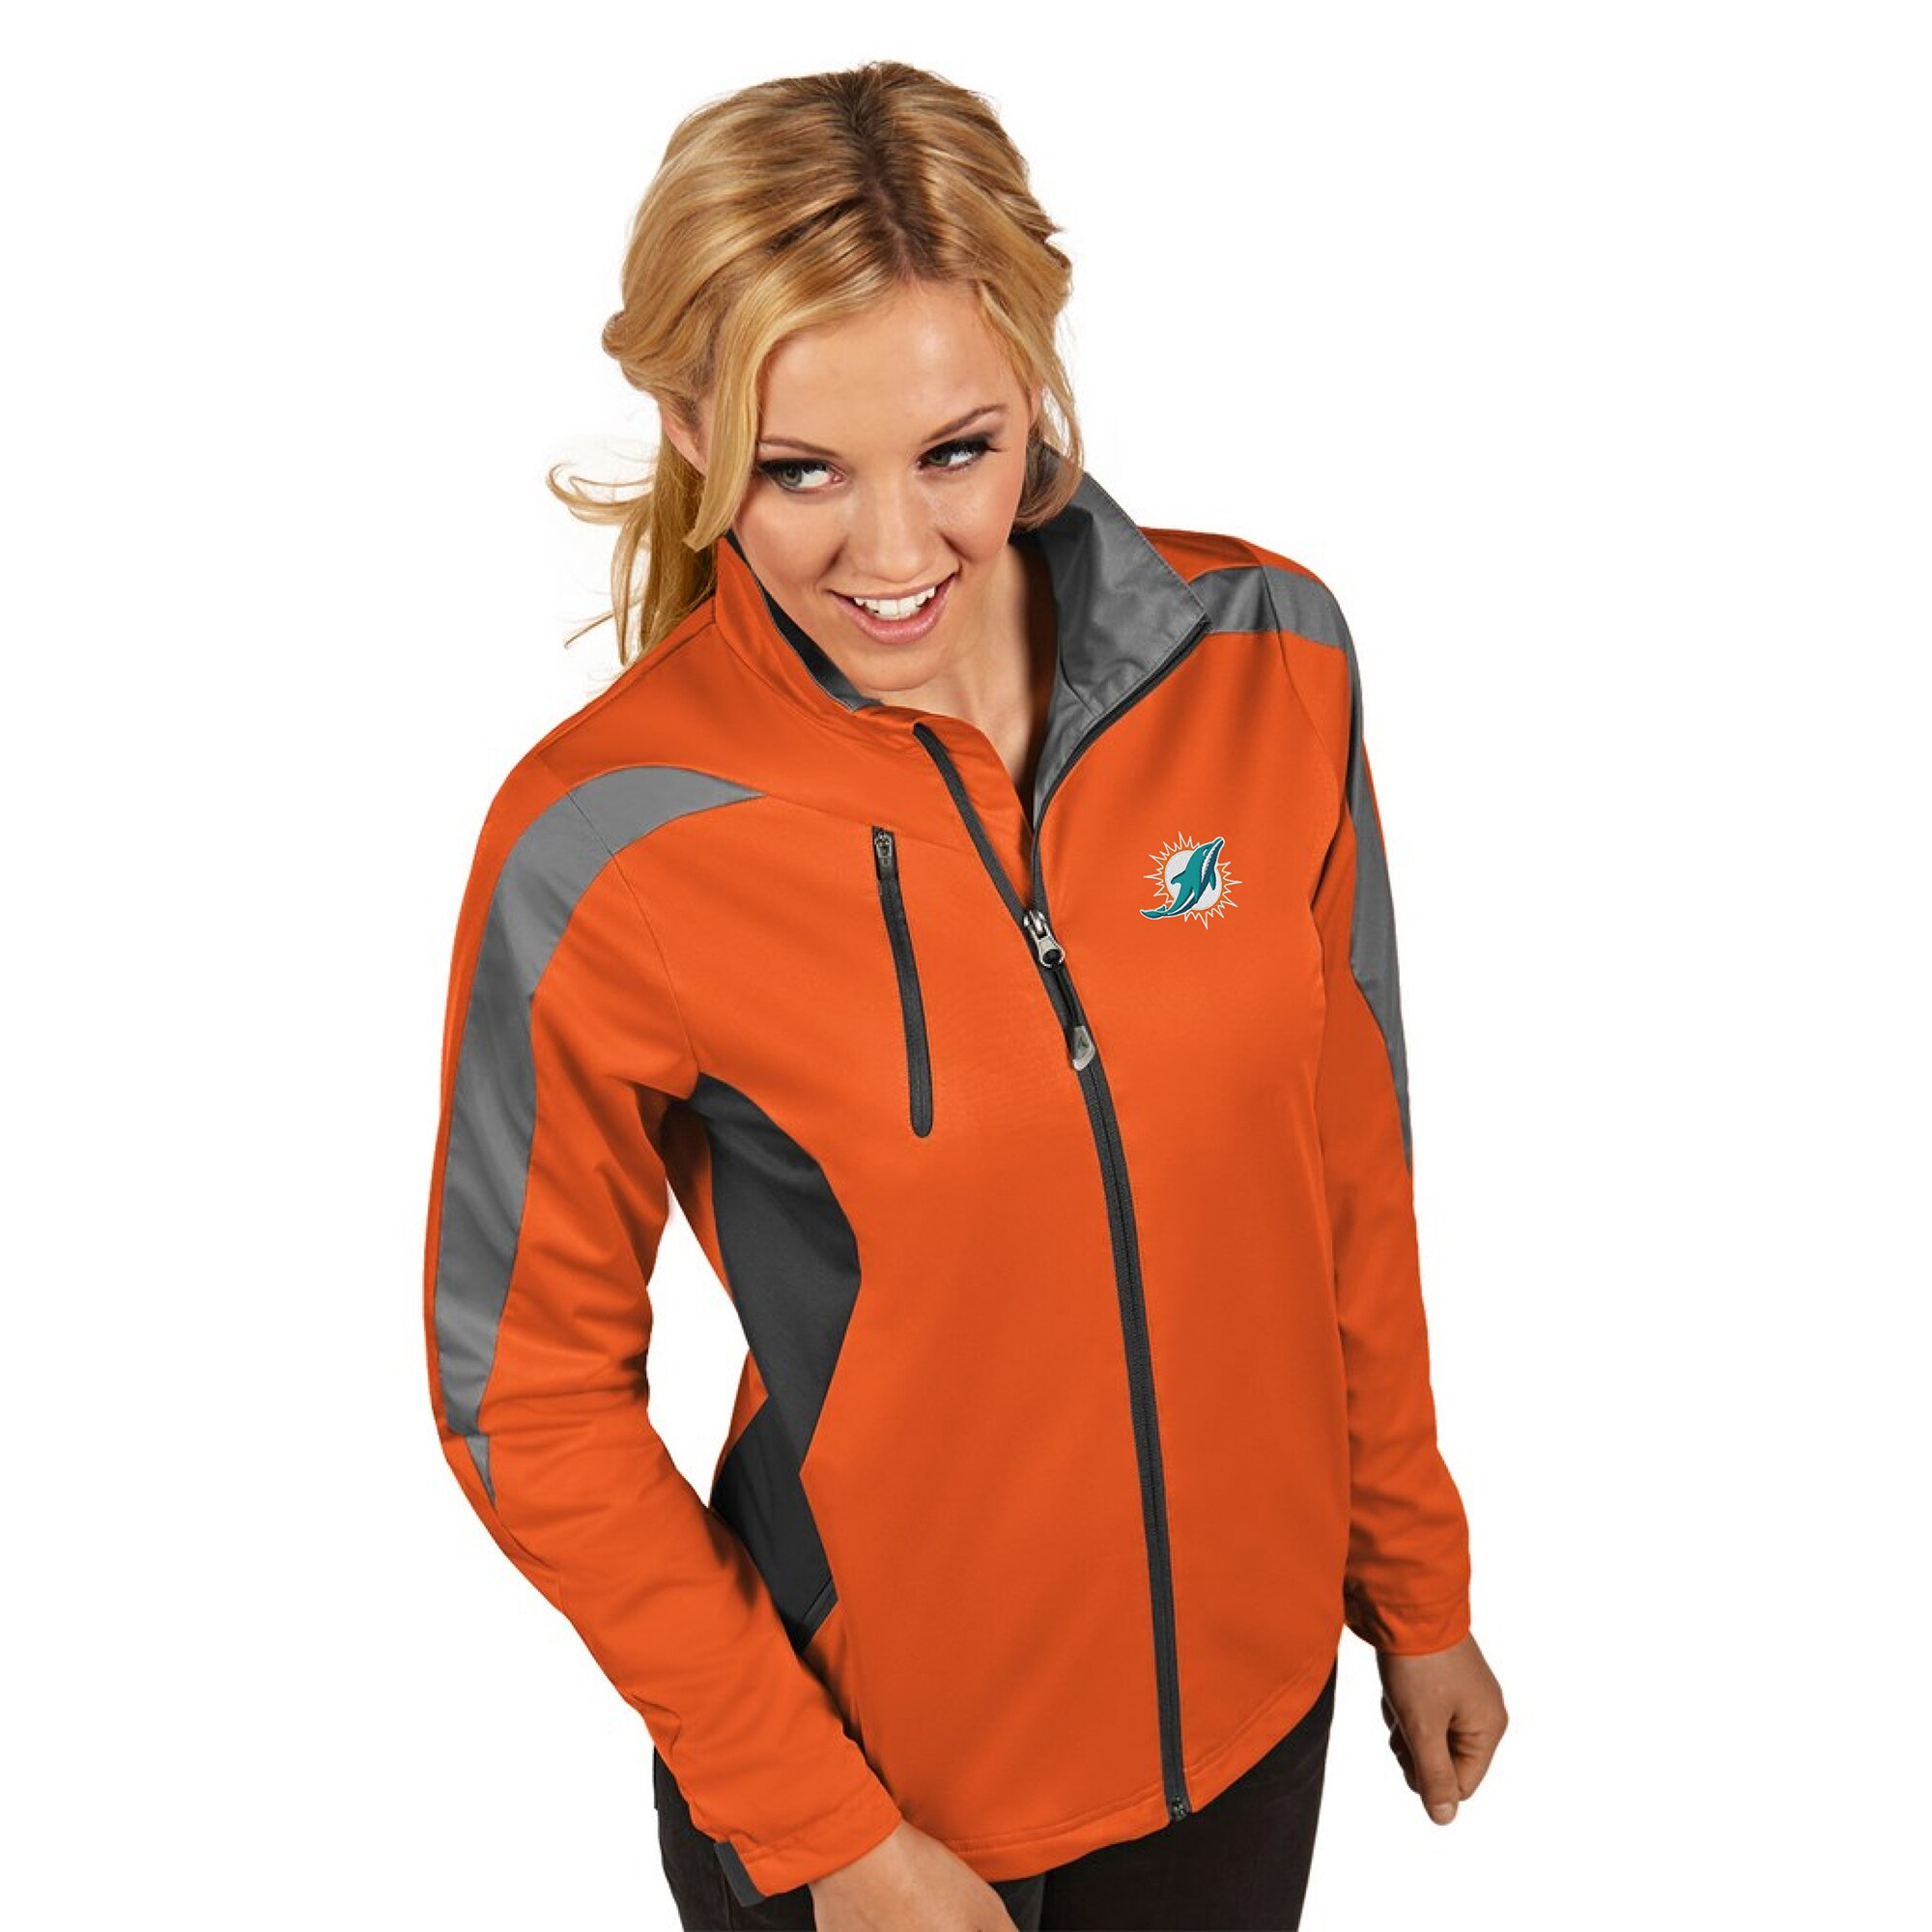 Miami Dolphins Women's Antigua Discover Full-Zip Jacket - Orange